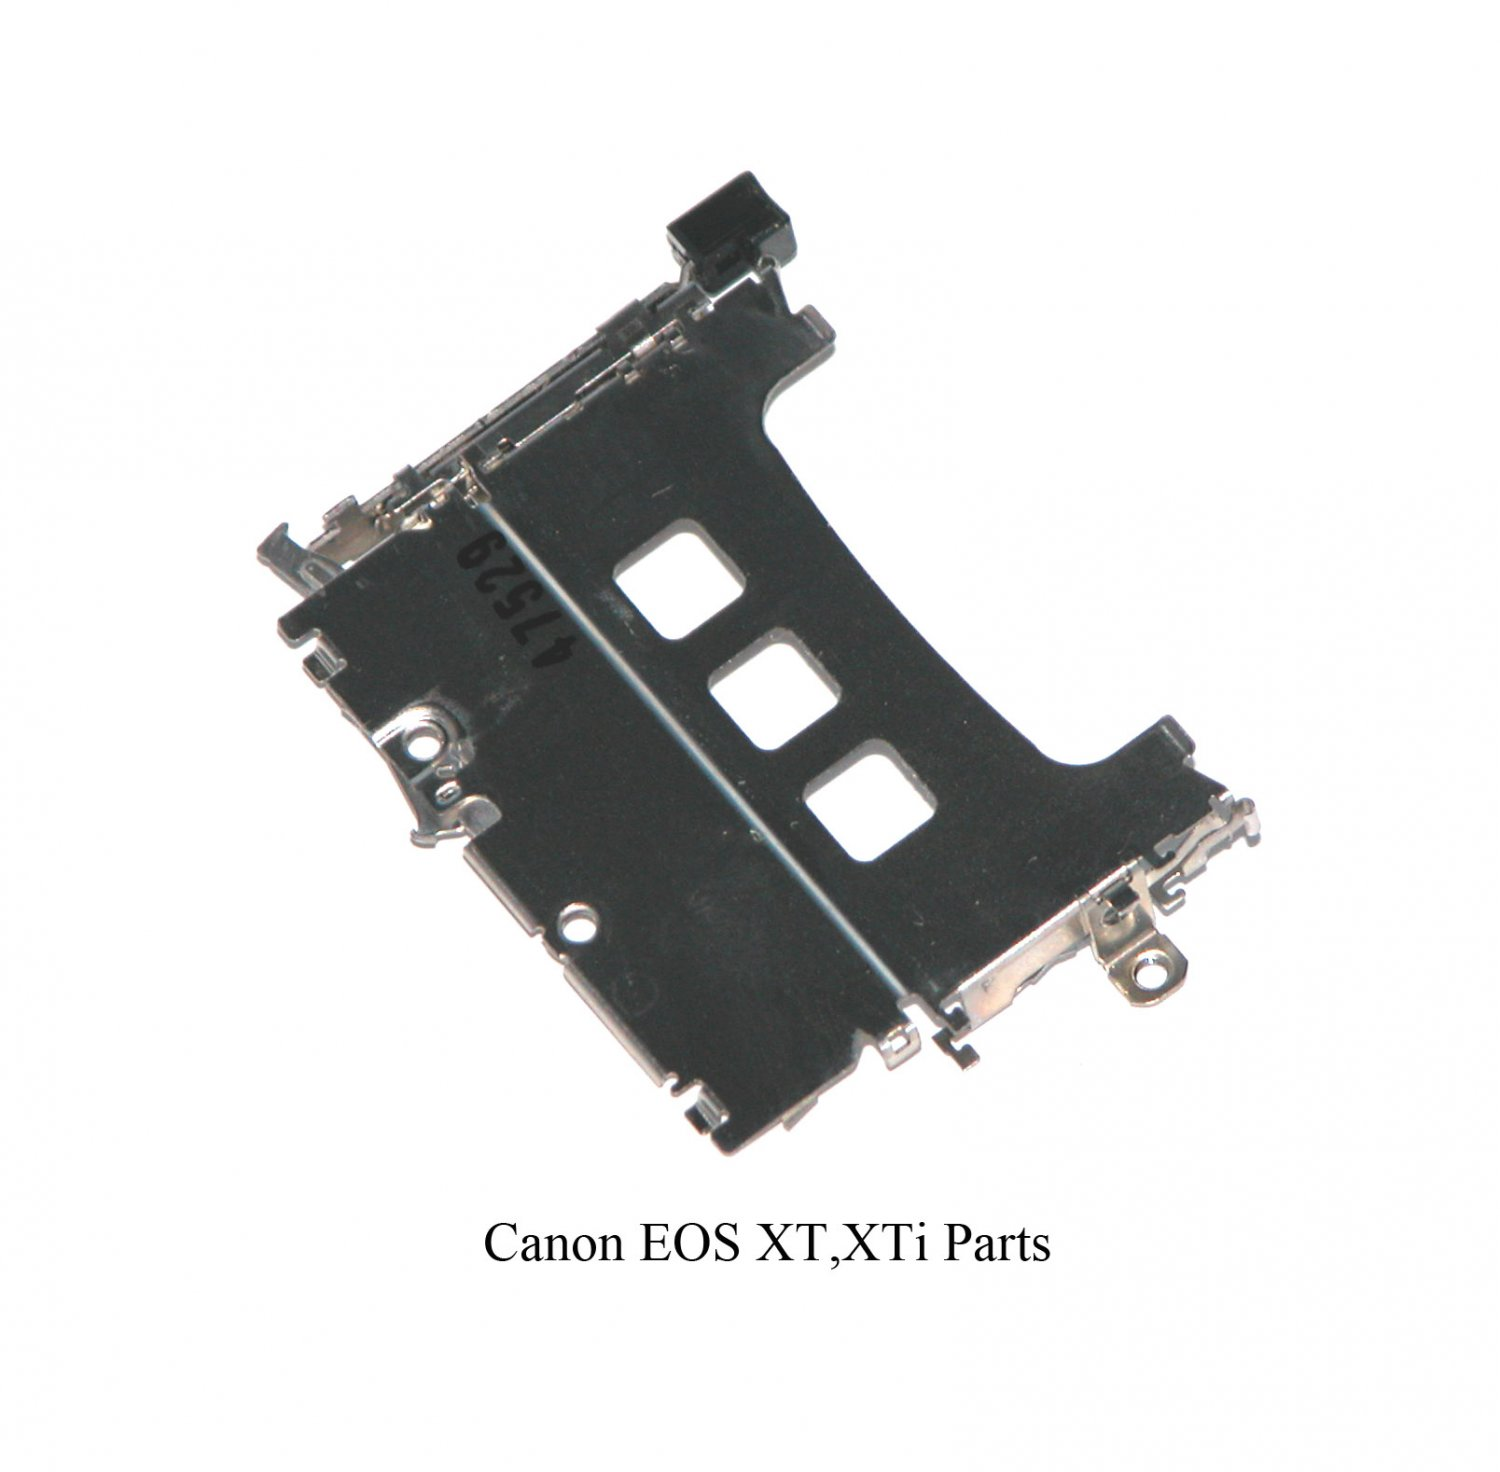 Genuine Canon EOS Digital Rebel XT XTi CF Card Cover - Replacement Parts